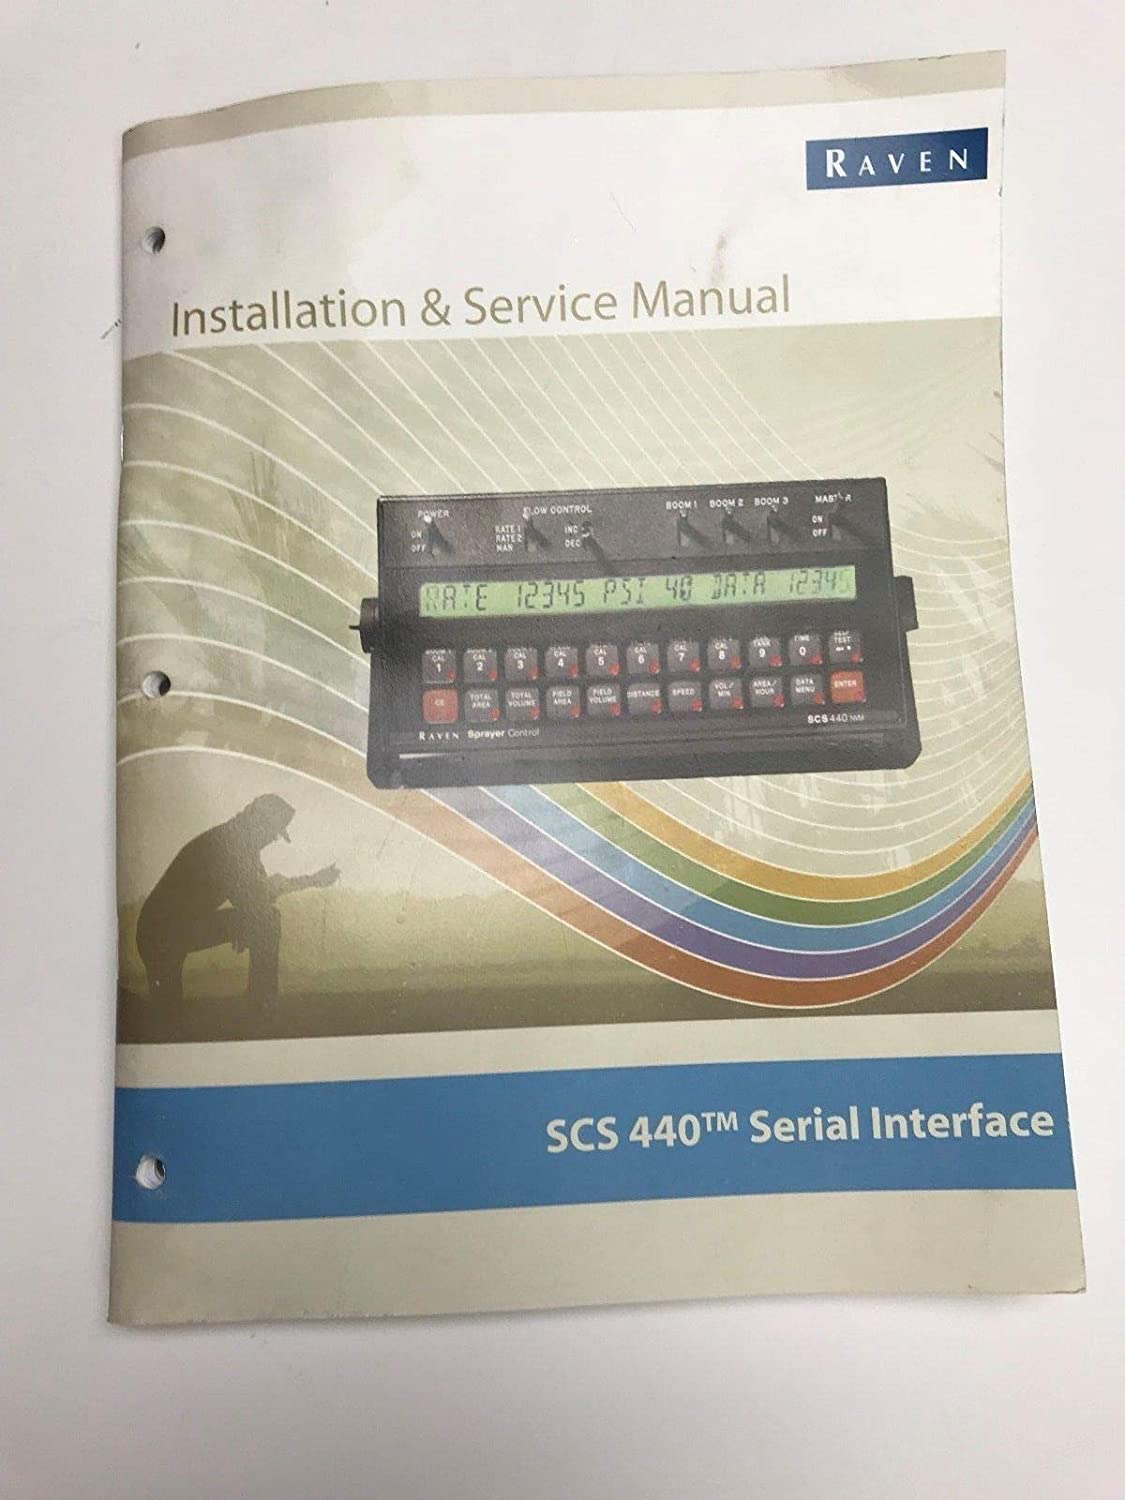 Raven Scs 440 Installation And Service Manual 016 0159 822